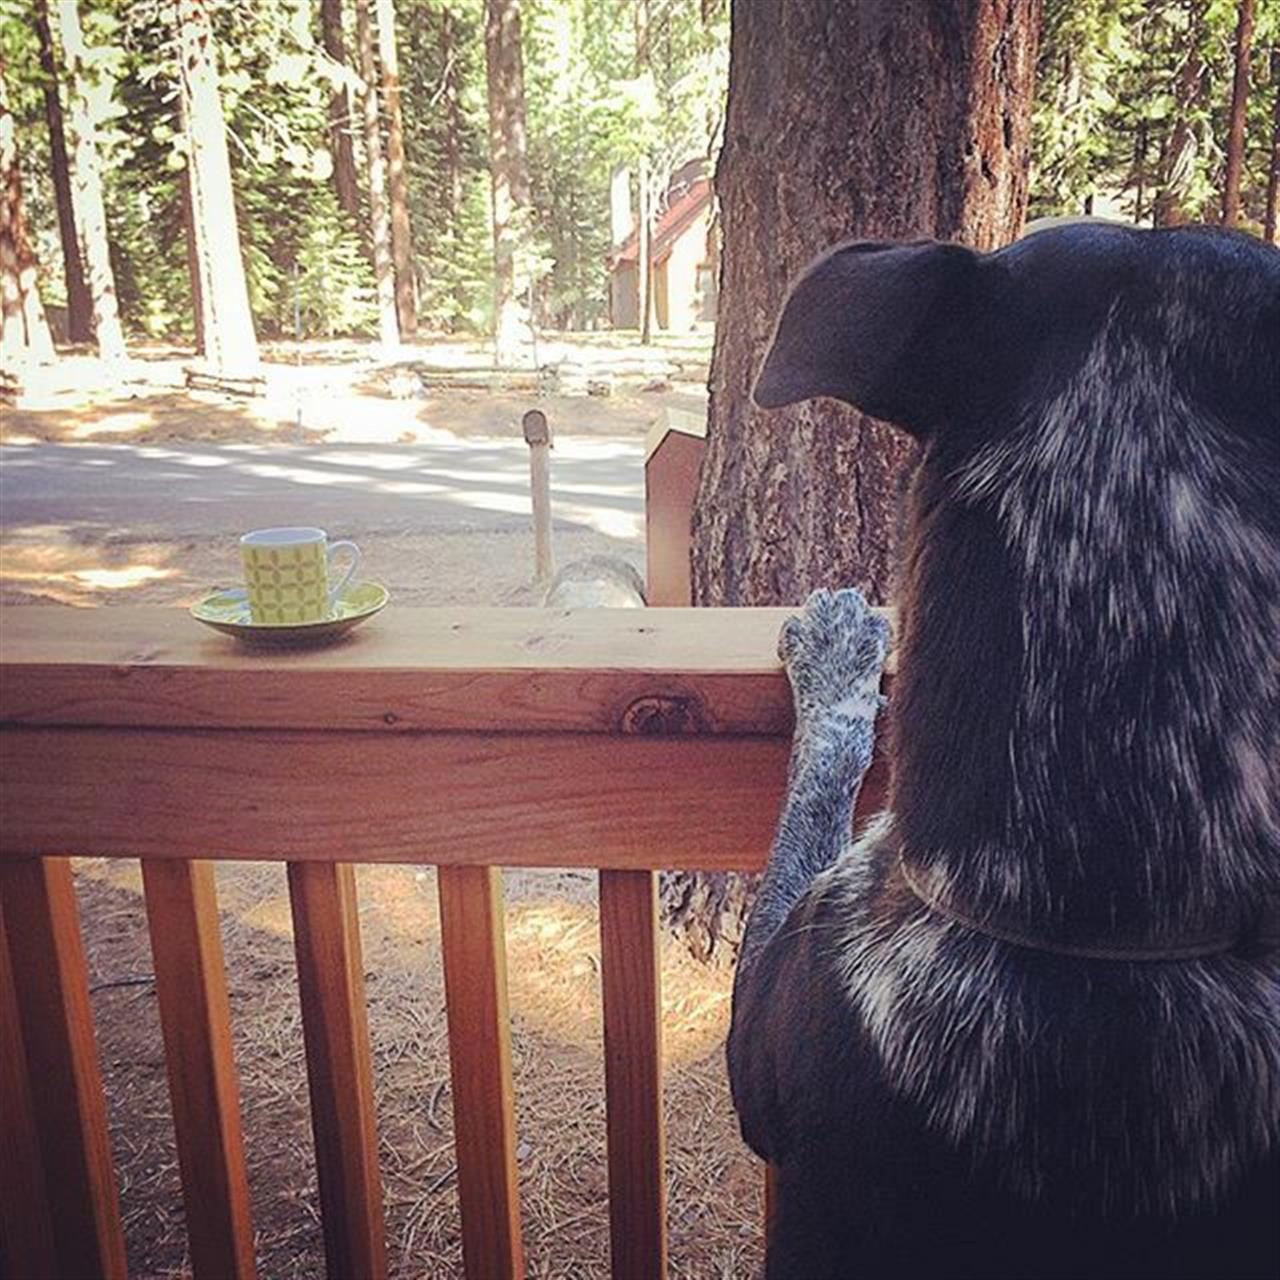 I LOVE mornings in my neighborhood! Morning coffee with my pup, great neighbors, the trees, the air, and the (cheeseburger) birds are out! ??#pioneertrail #southlaketahoe #southlakehomes #jctahoehomes #tahoerealtor #southlaketahoerealestate #leadingrelocal #leadingrealestatecompaniesoftheworld #pinnaclerealestate